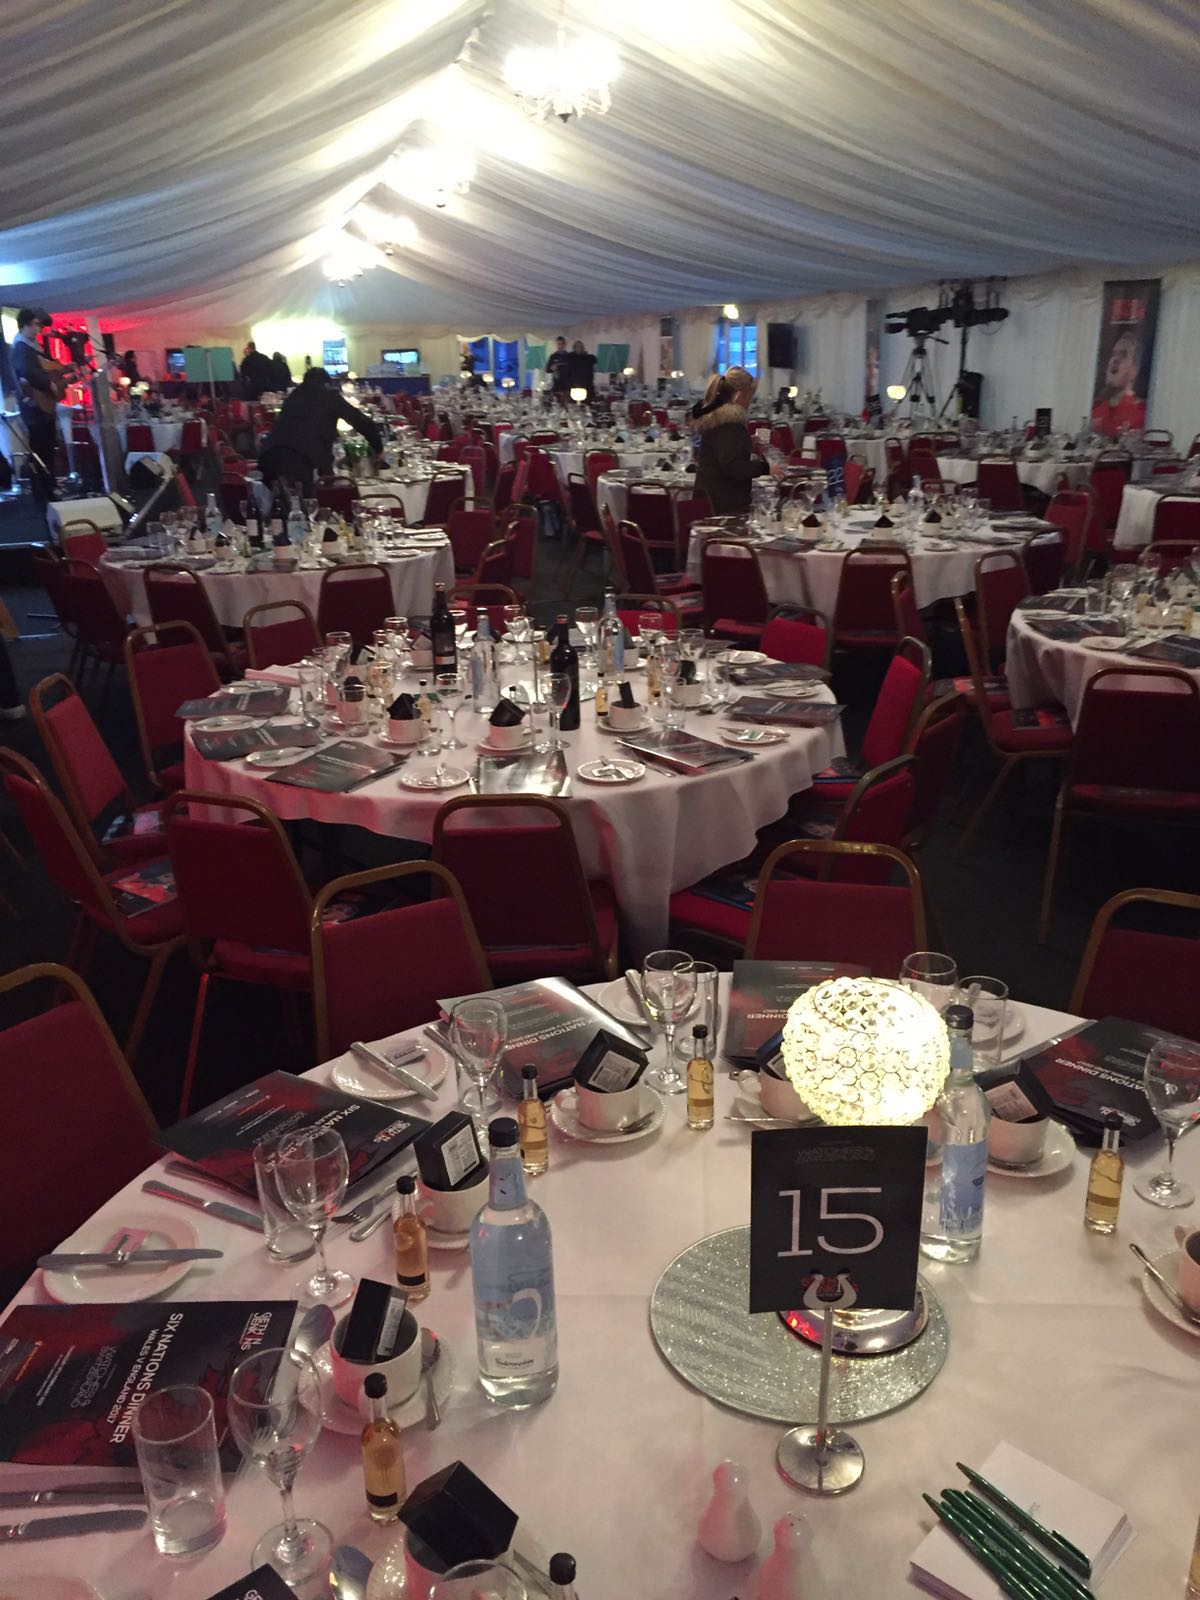 Gethin Jenkins testimonial dinner, Thursday 9th February 2017 with Spiros Caterers - the room during the event